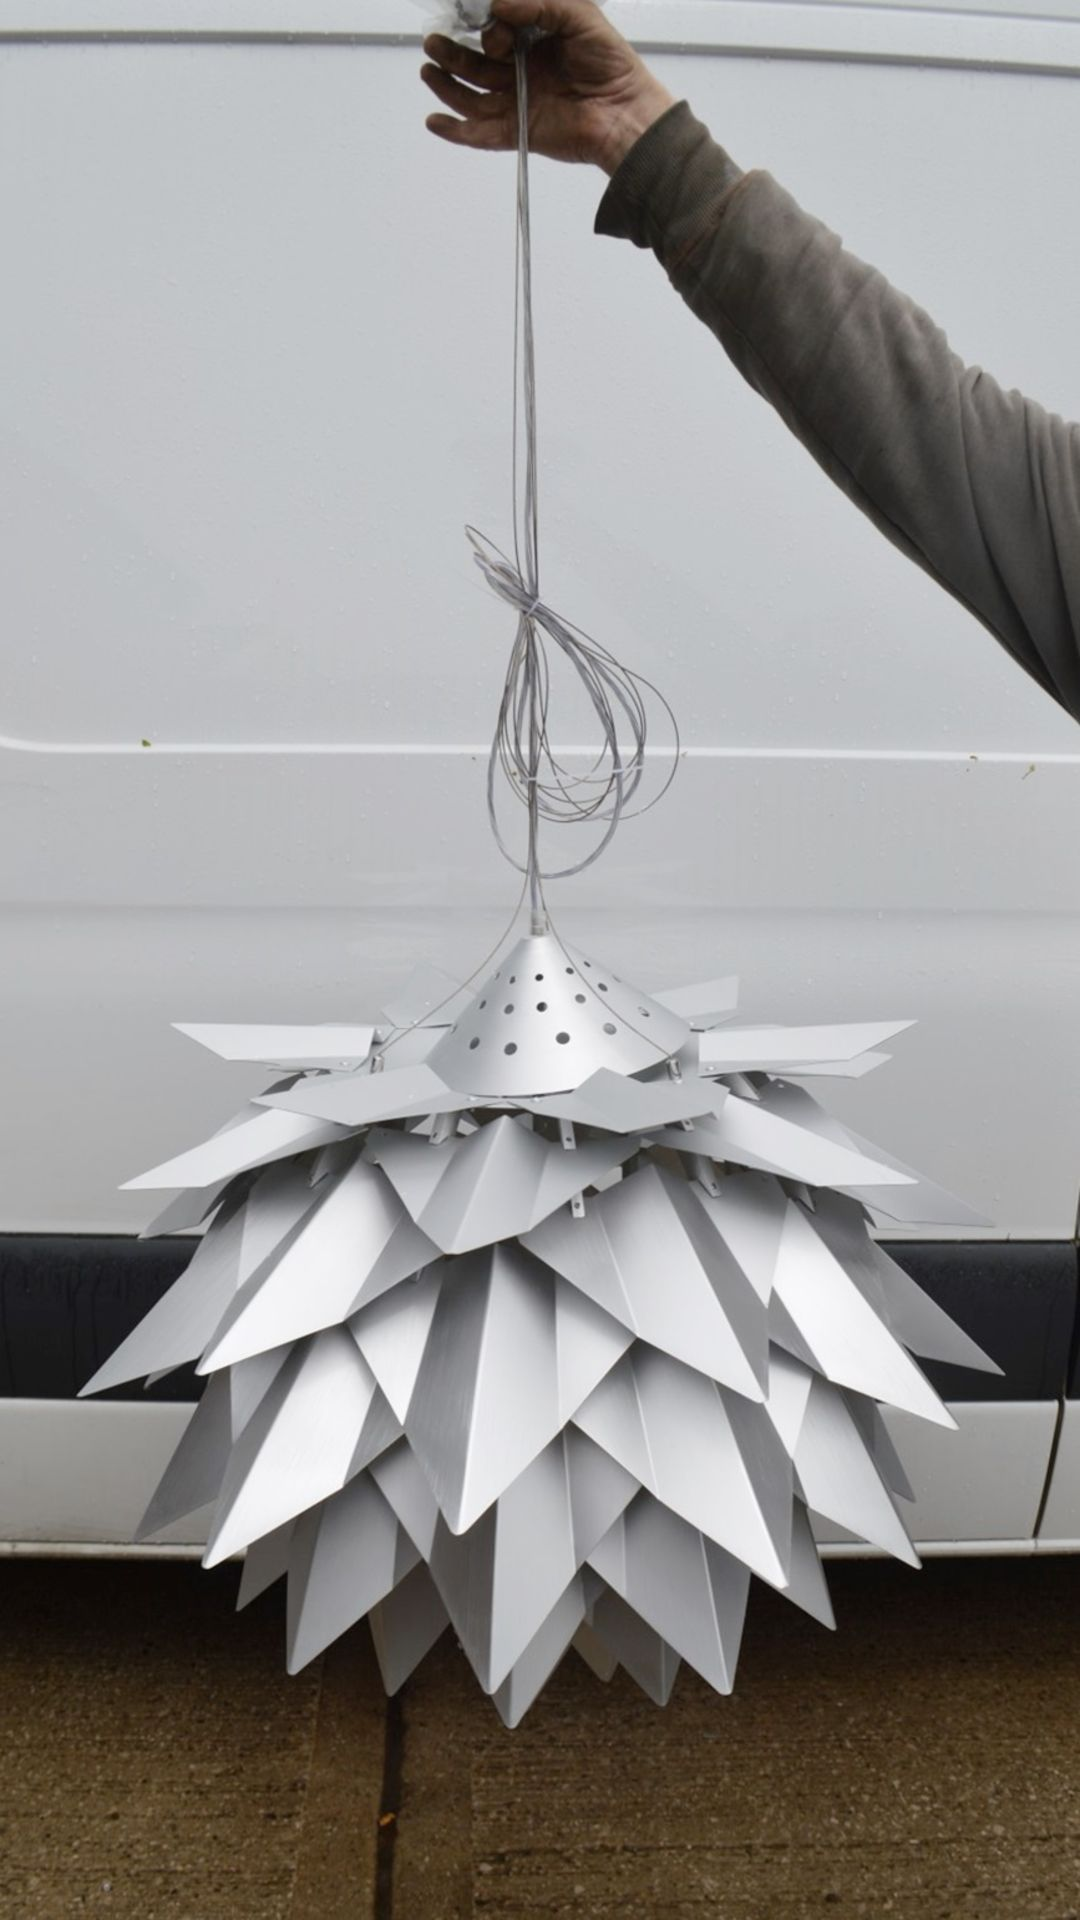 1 x 'Comosus' Statement Ceiling Pendant Light In Aluminium With A Brushed Silver Finish - Image 3 of 6